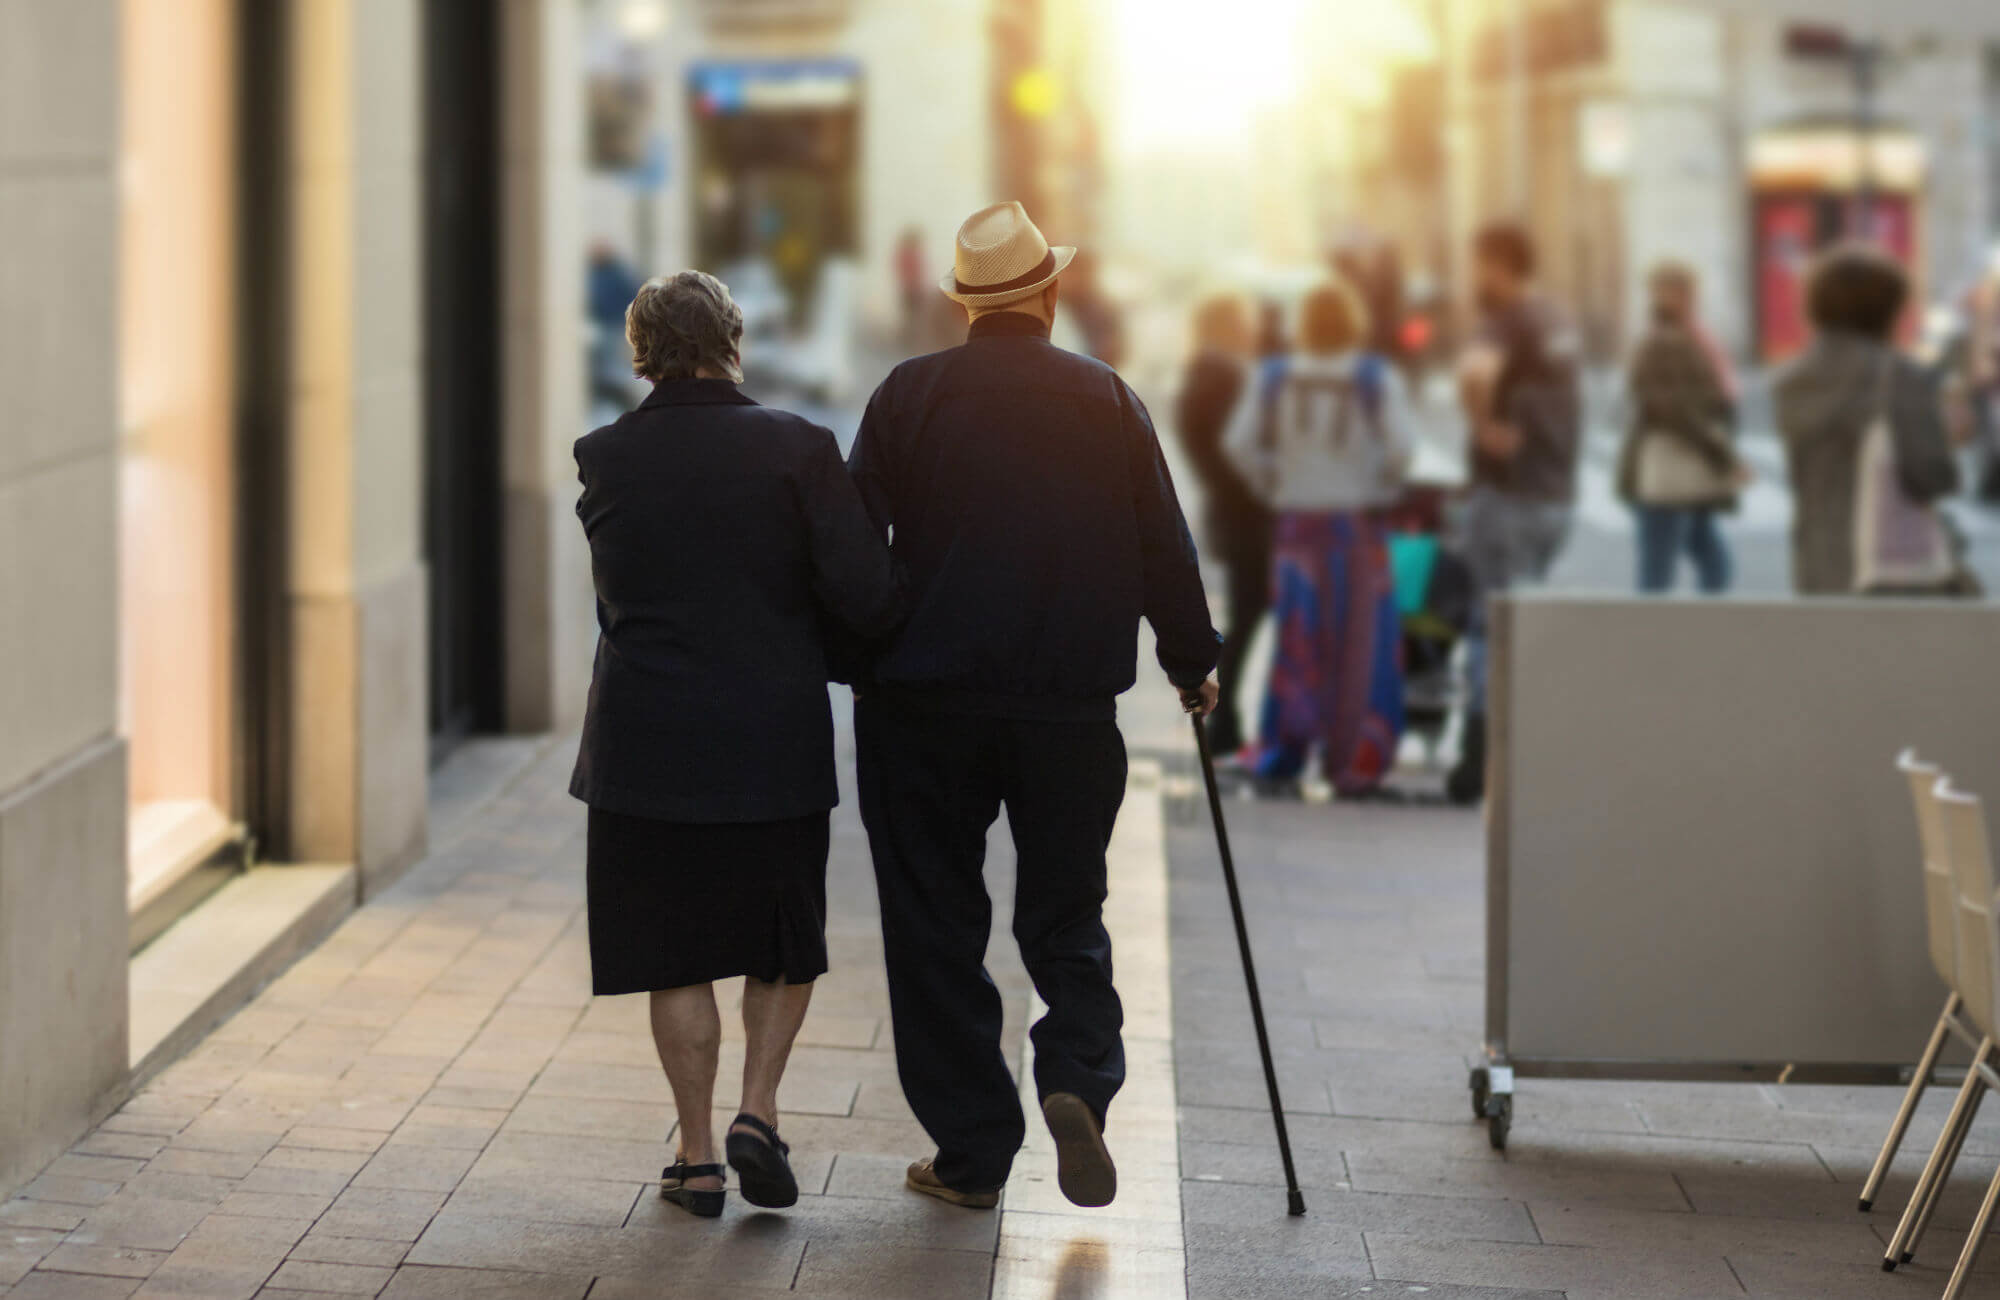 An older couple walking down a city sidewalk